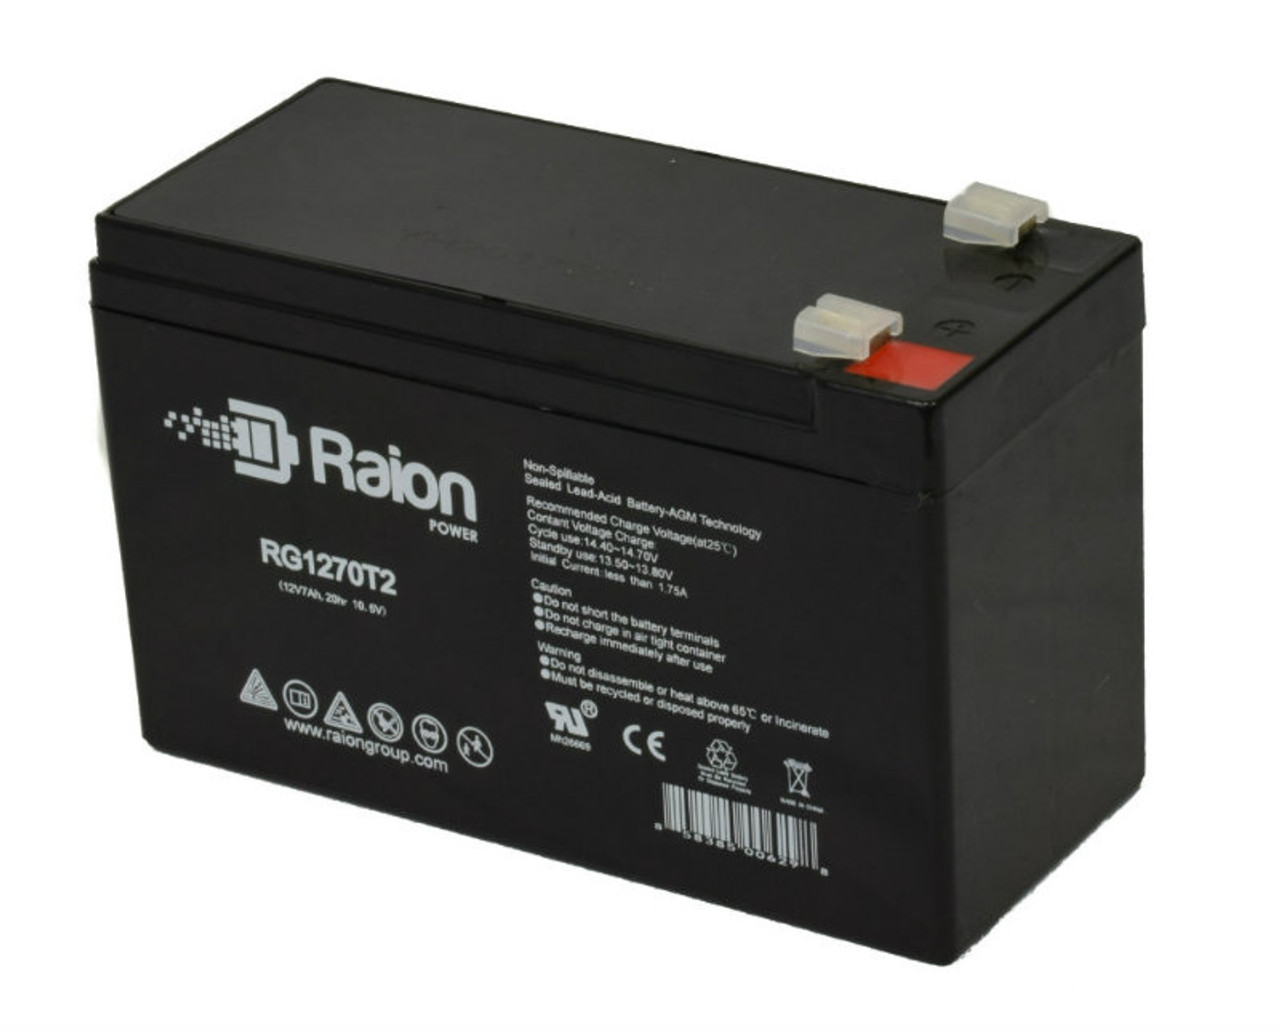 Raion Power RG1270T1 Replacement Battery for Zeus Battery PC7-12F1